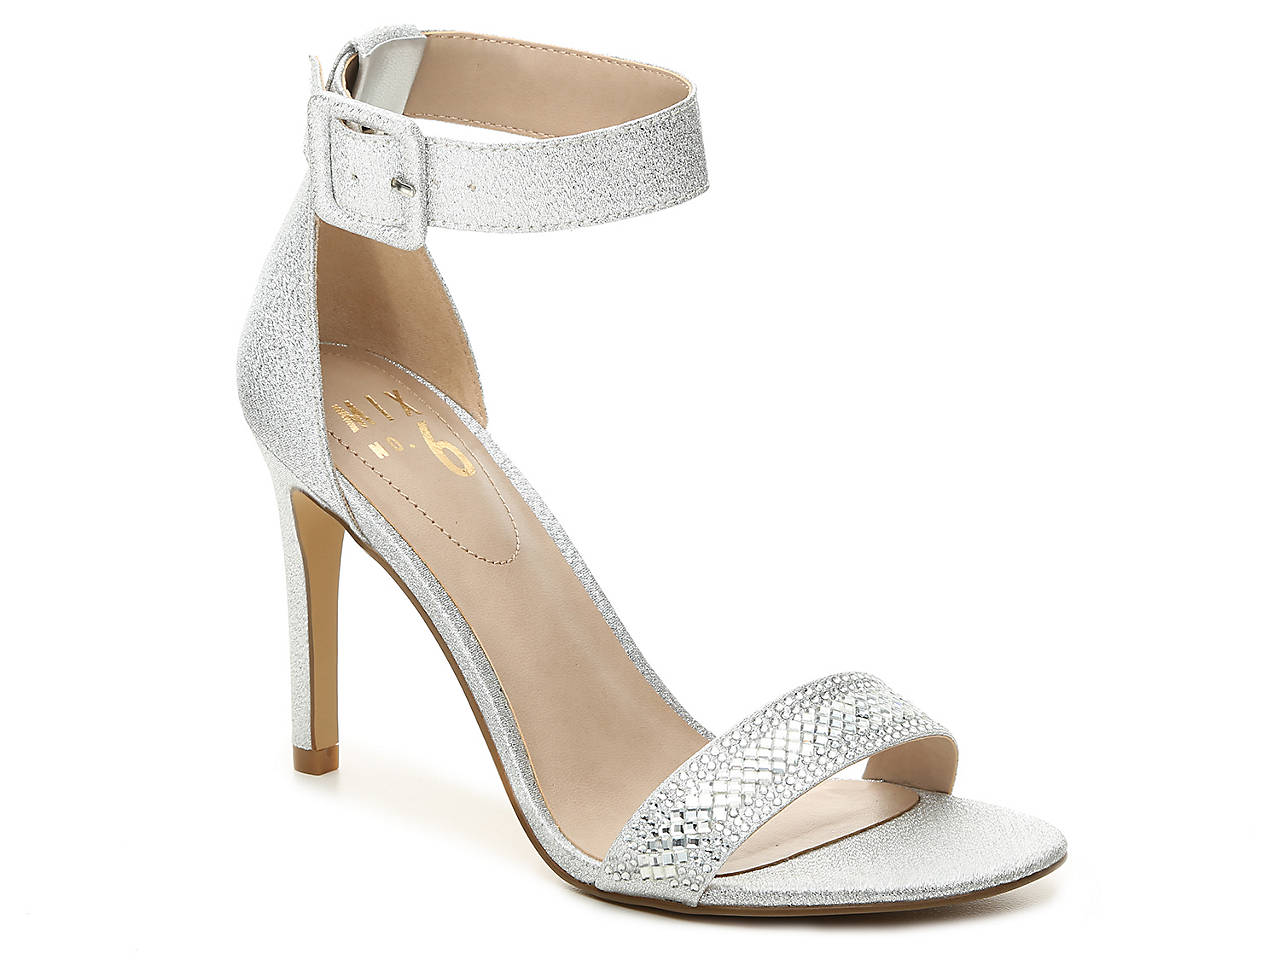 No Heel Wedding Shoes: Mix No. 6 Lole Sandal Women's Shoes